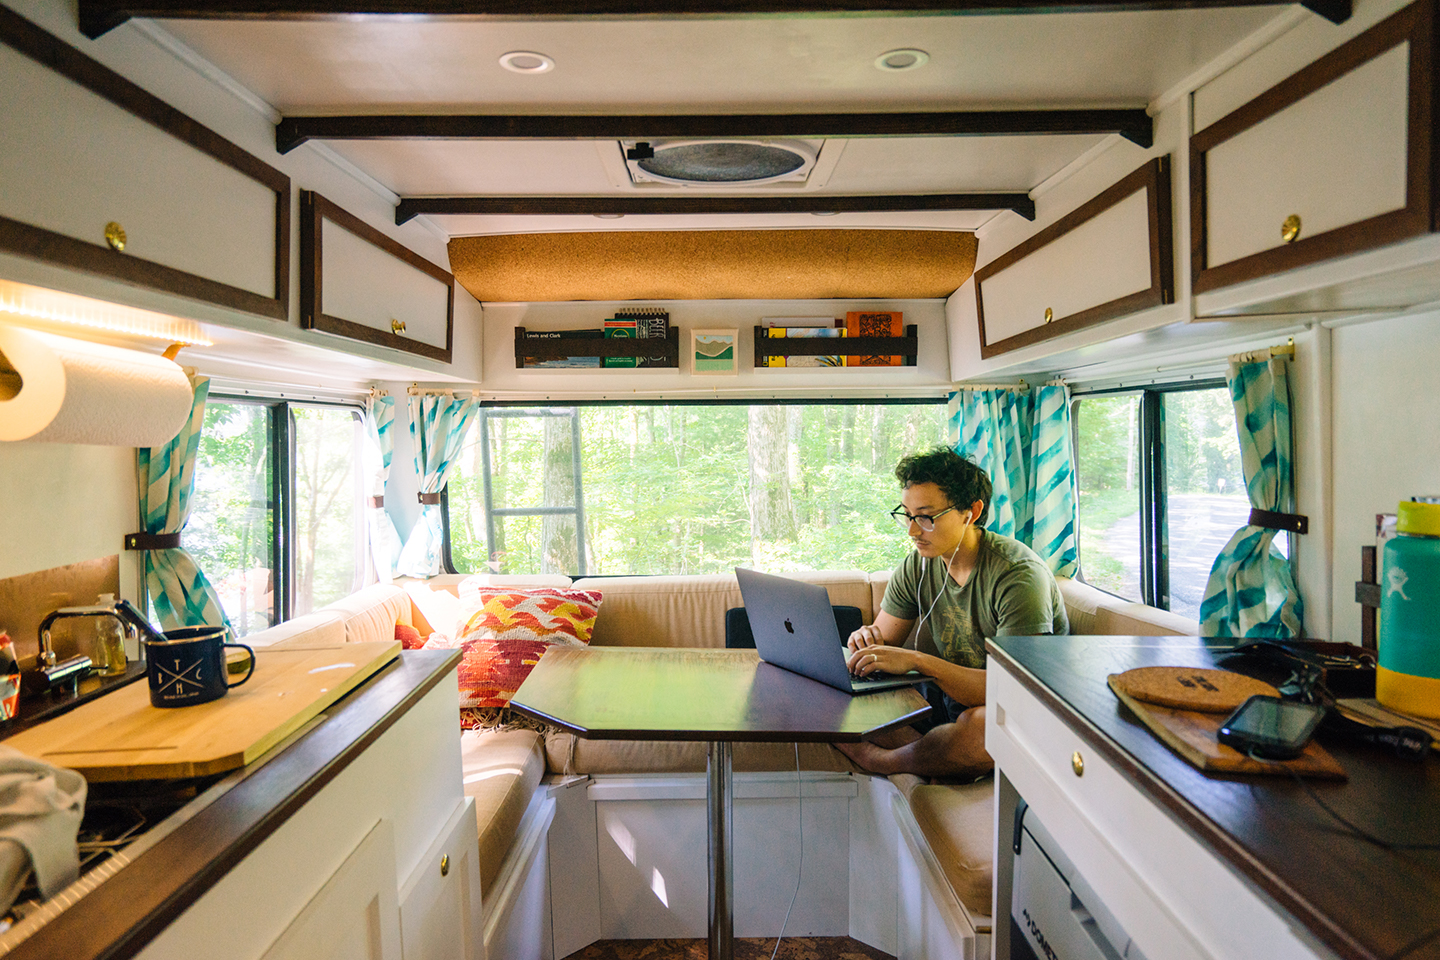 A man sits inside a camper van and works on his laptop.